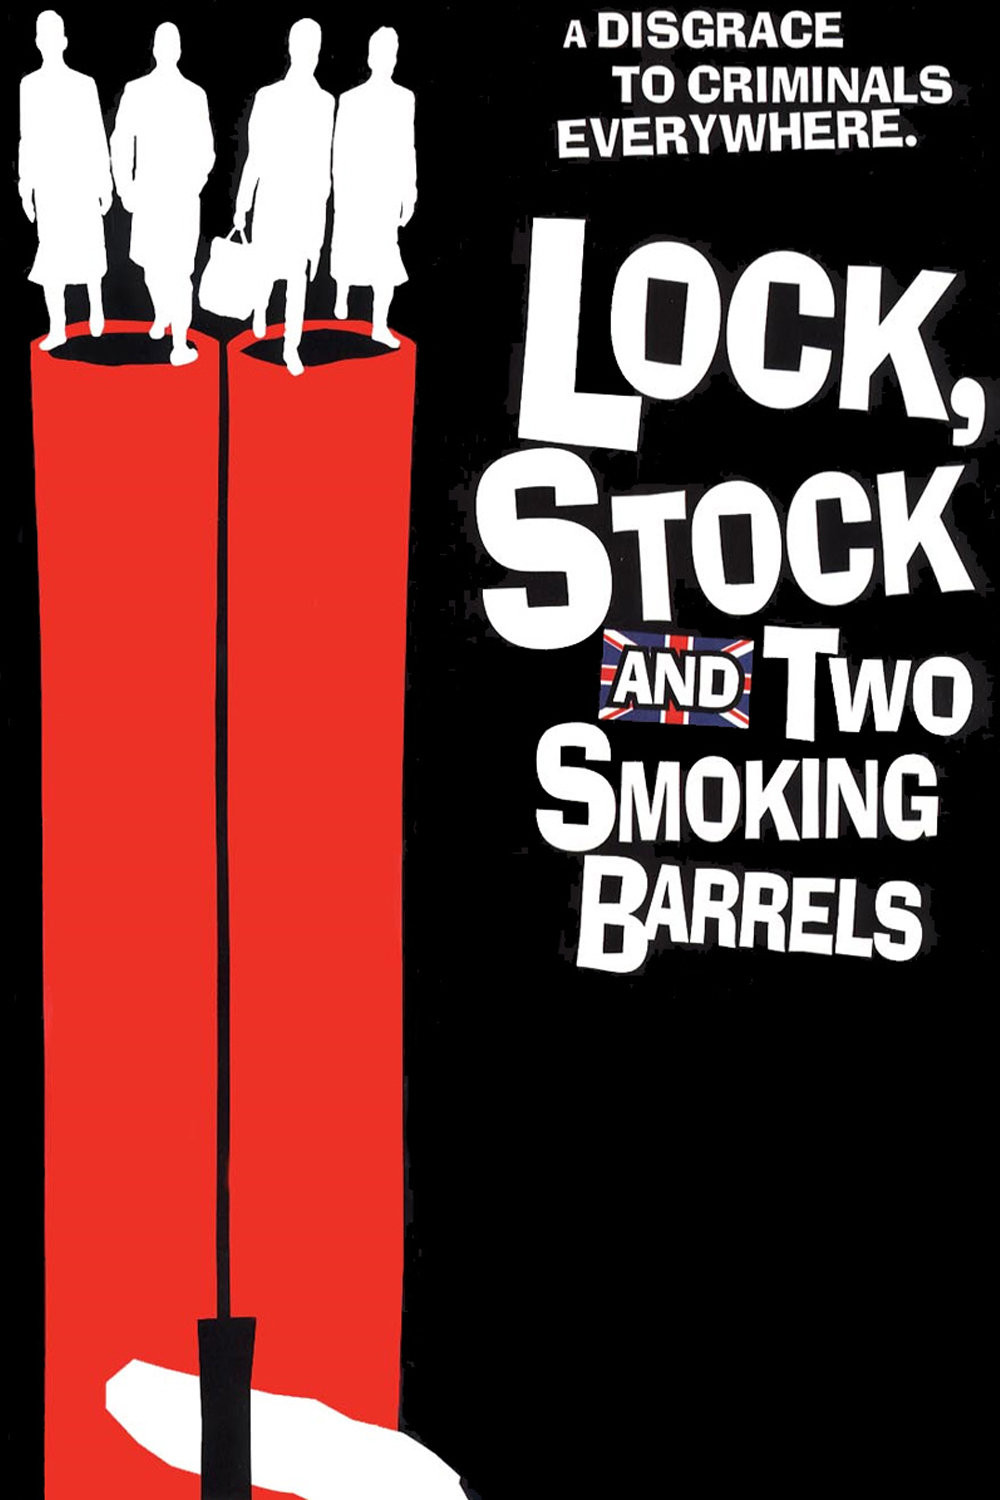 lock stock two barrels